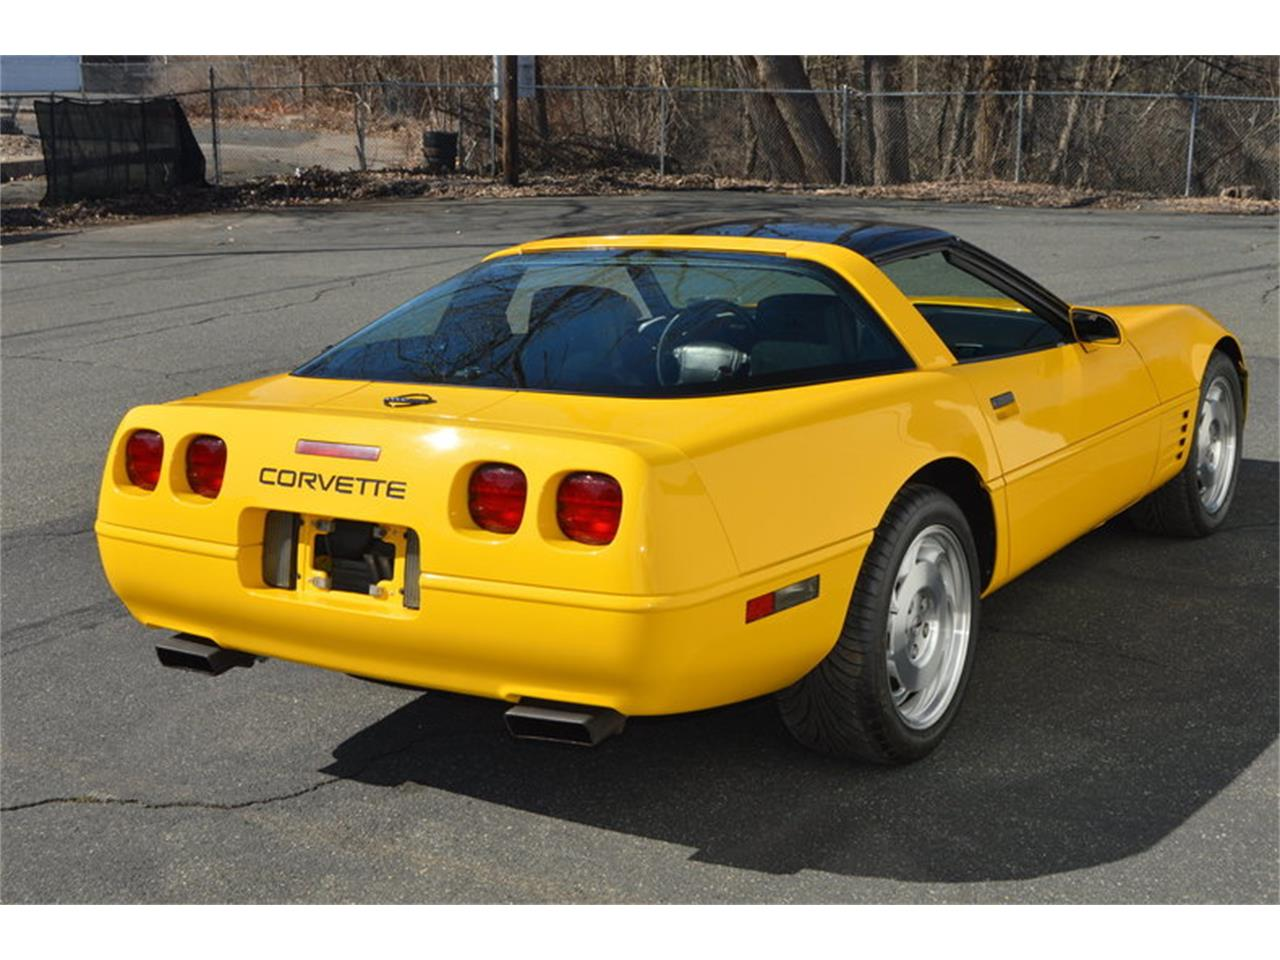 Large Picture of '93 Chevrolet Corvette - $8,990.00 Offered by Mutual Enterprises Inc. - MZK6